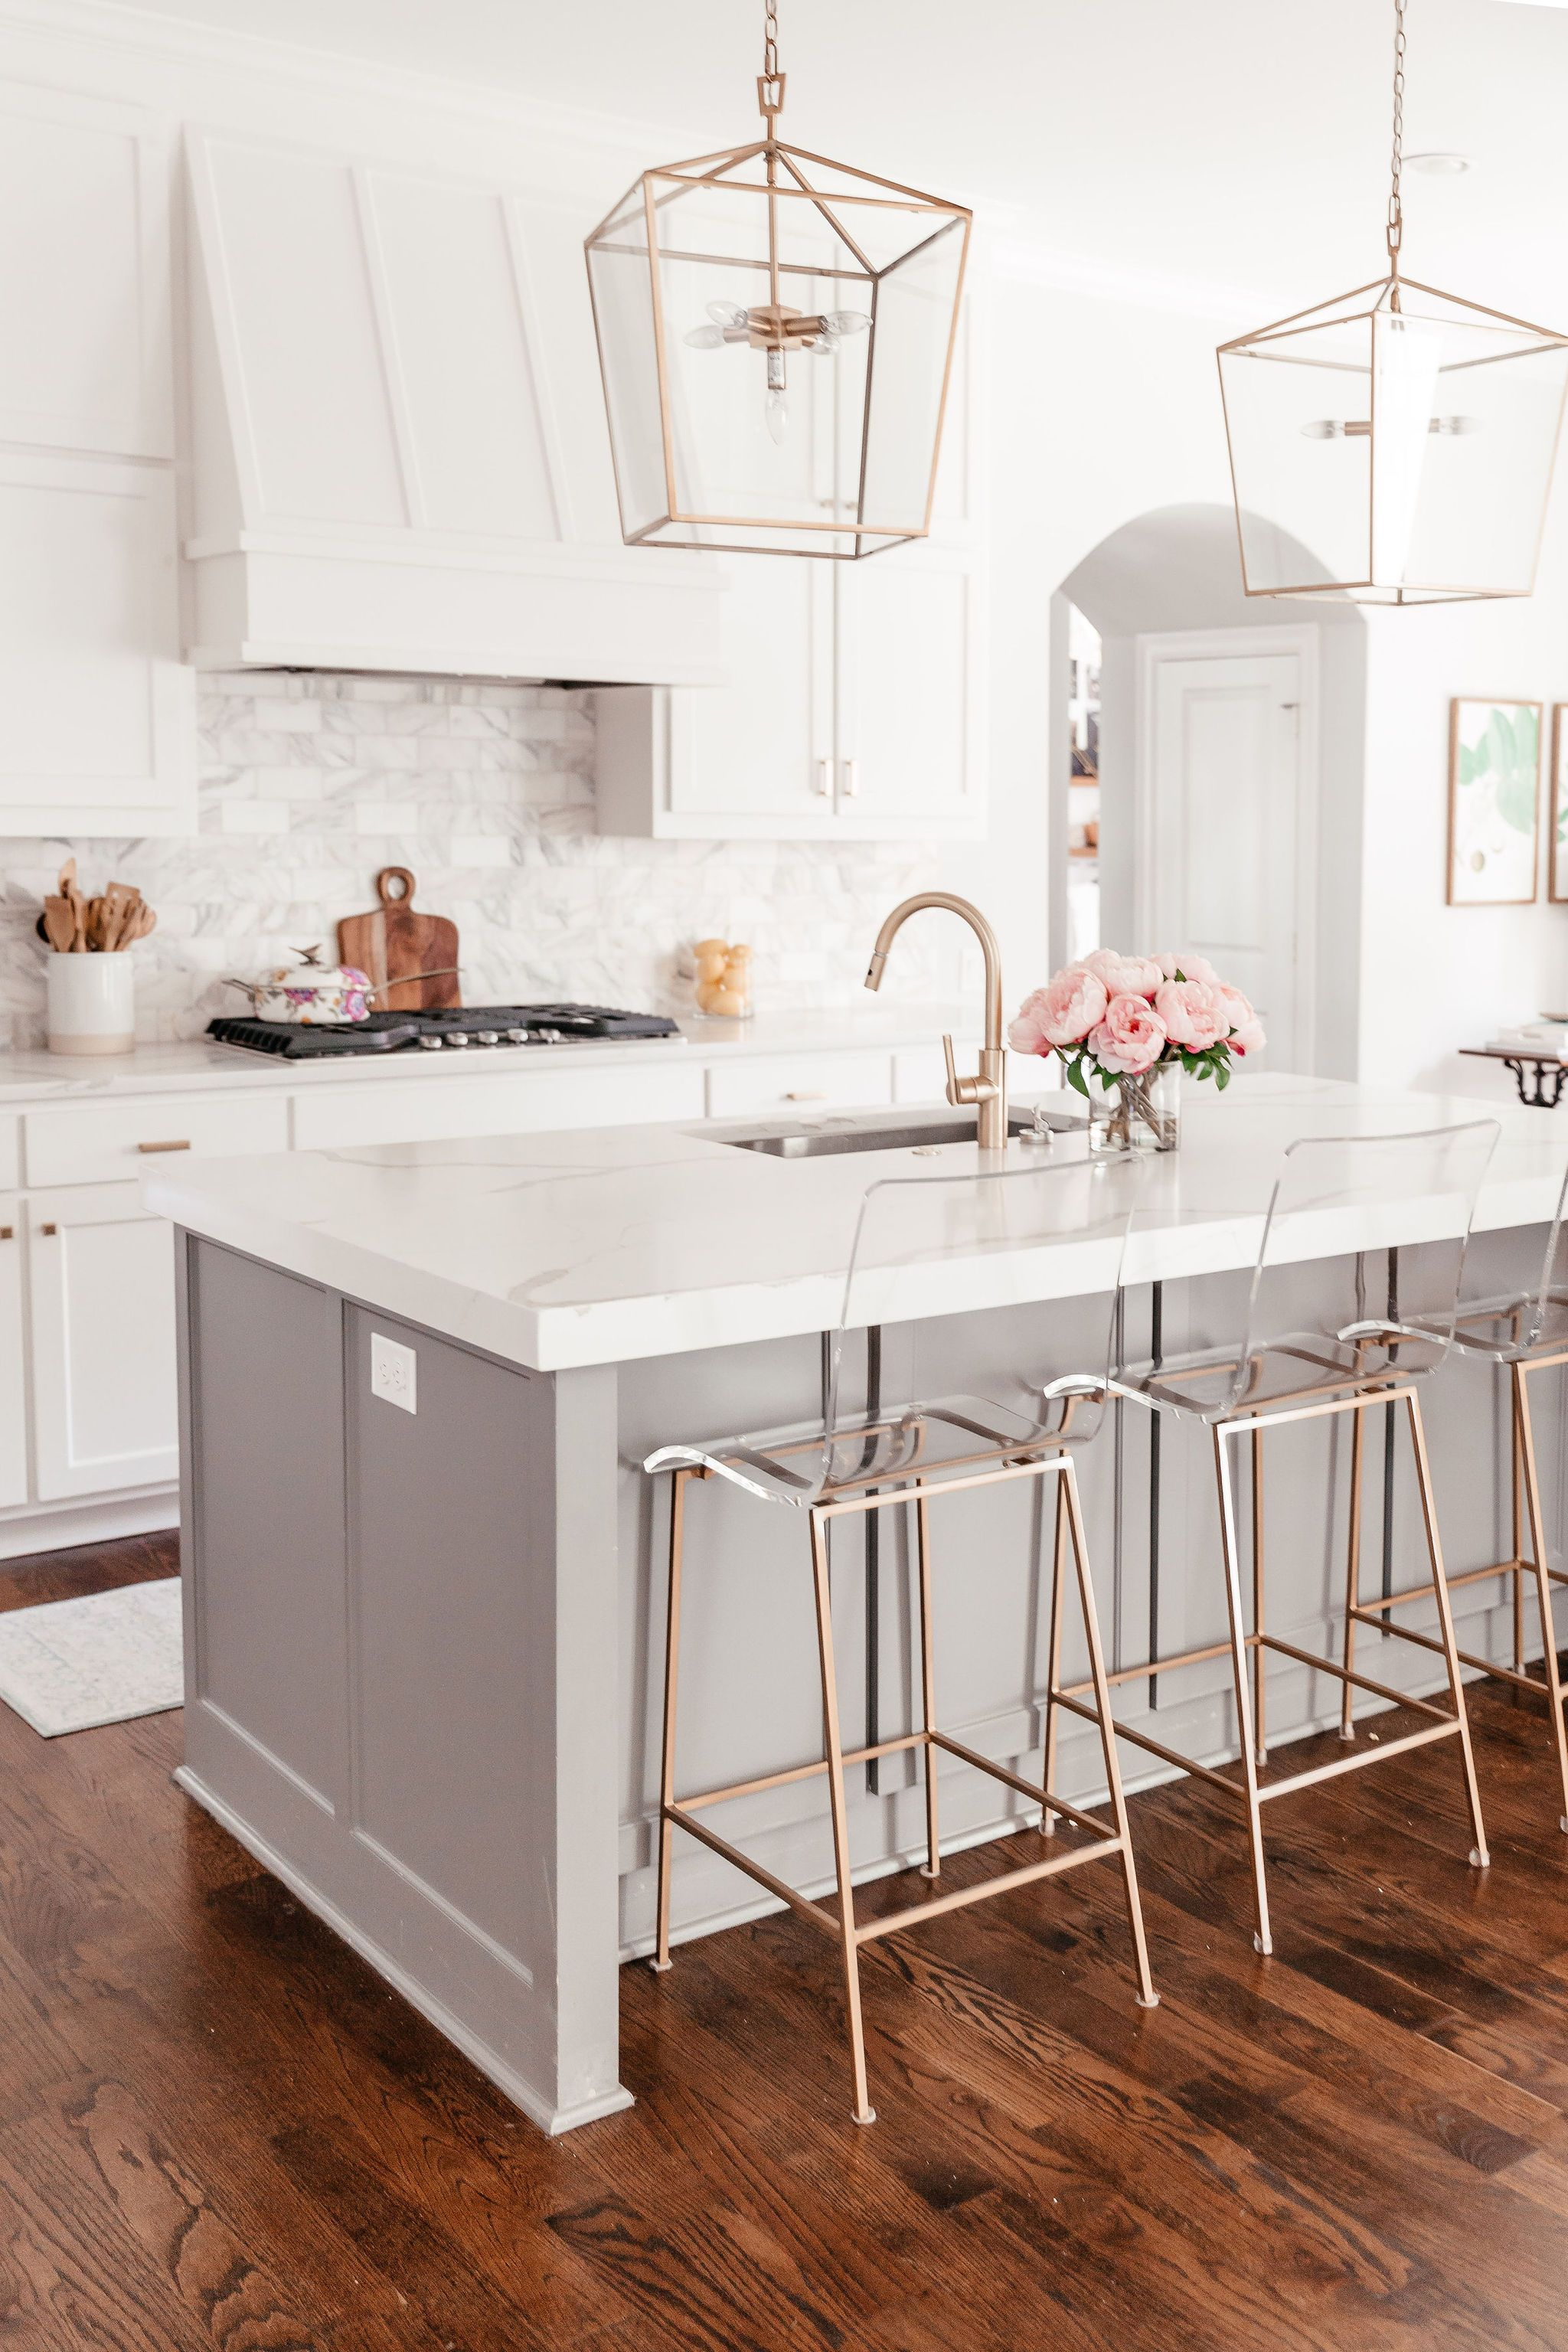 All About My Dallas Home In 2020 Acrylic Bar Stools Bar Stools Kitchen Island Kitchen Design